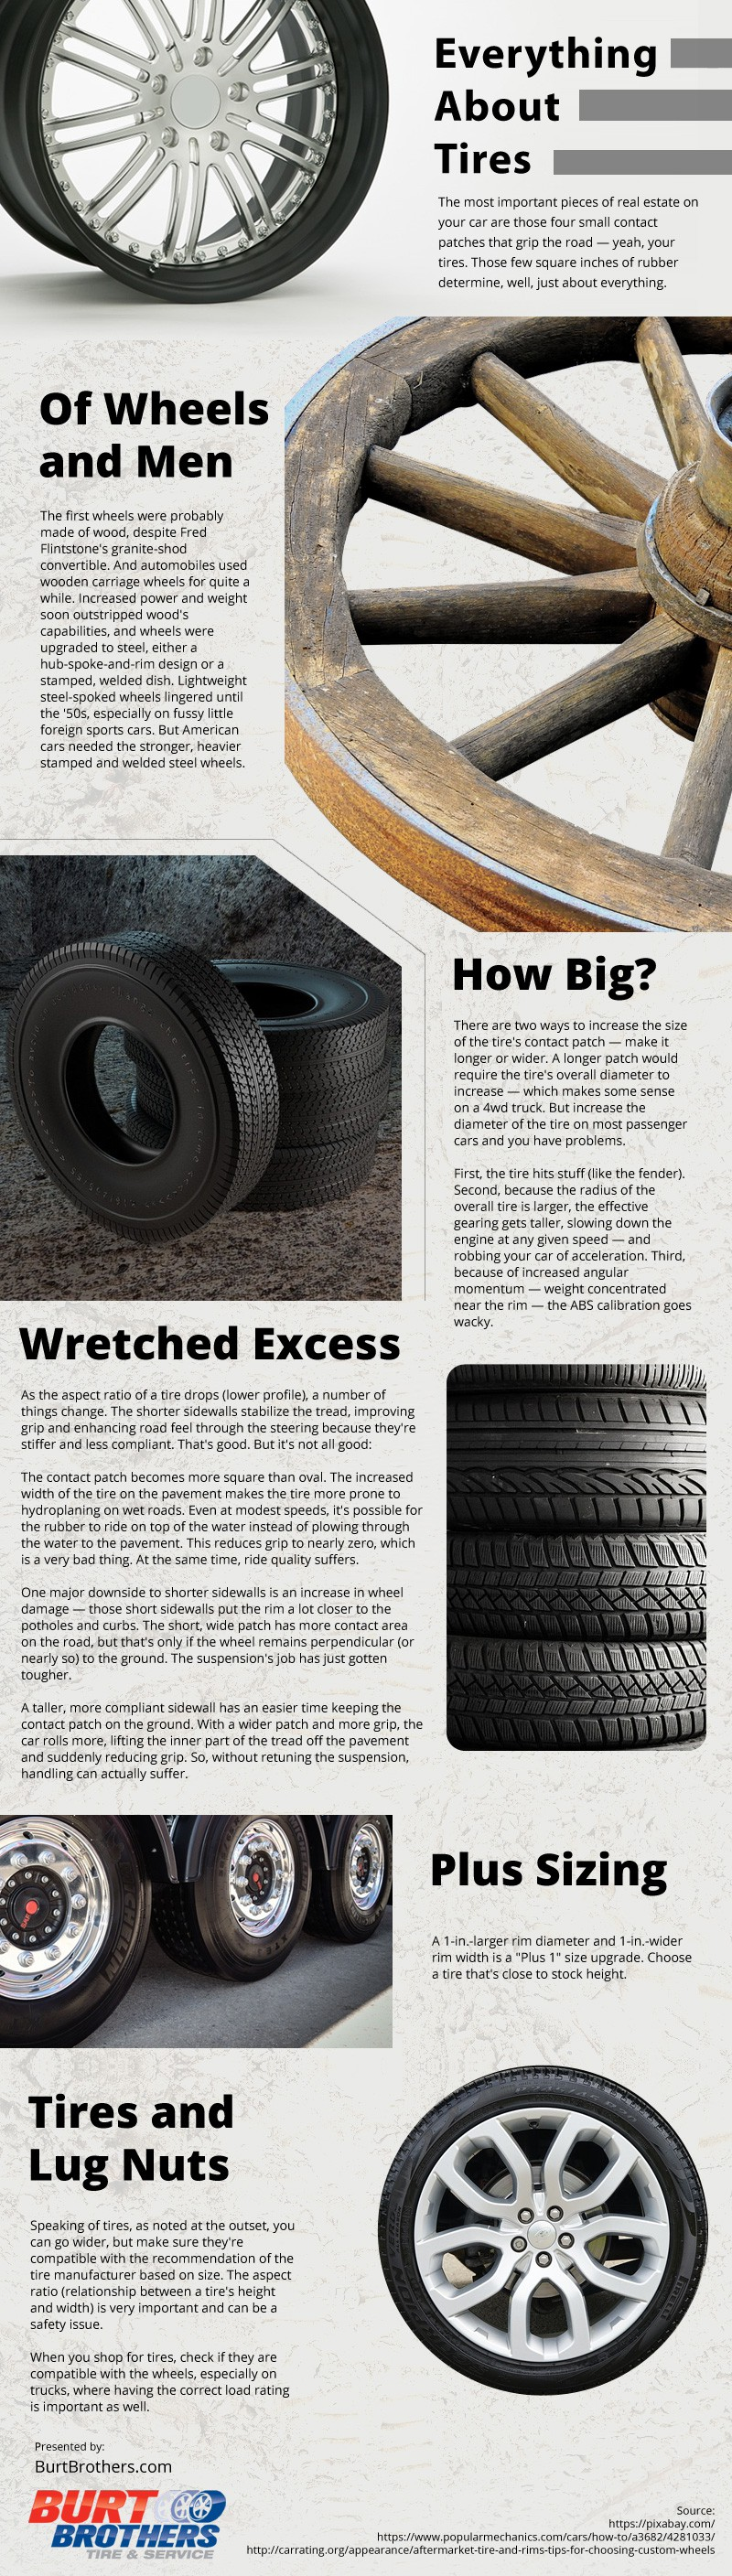 Everything-about-tires Infographic